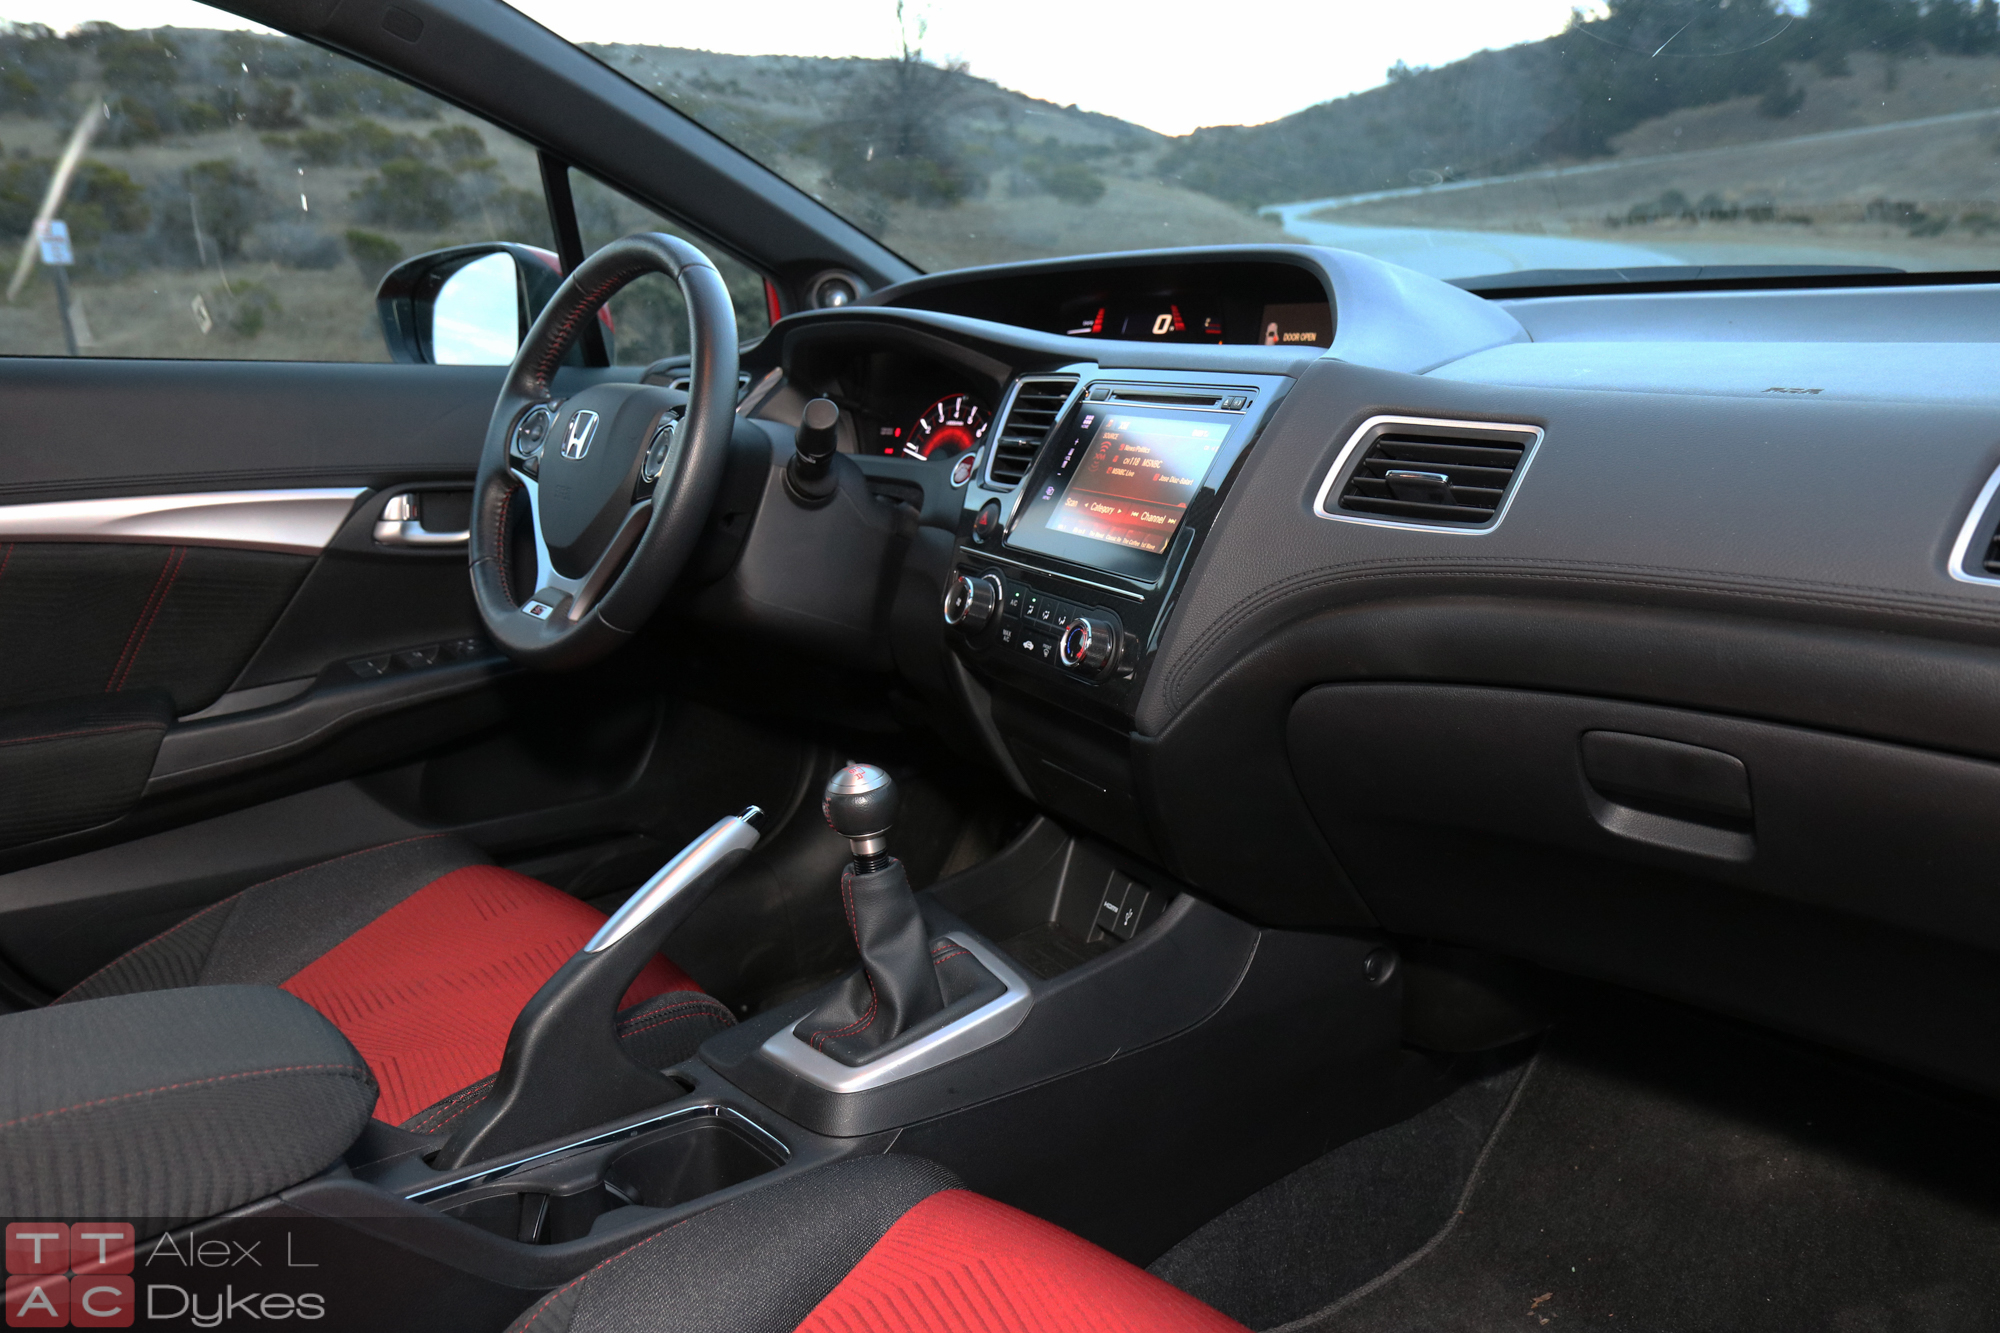 2015 Honda Civic Si Sedan Interior 004 The Truth About Cars